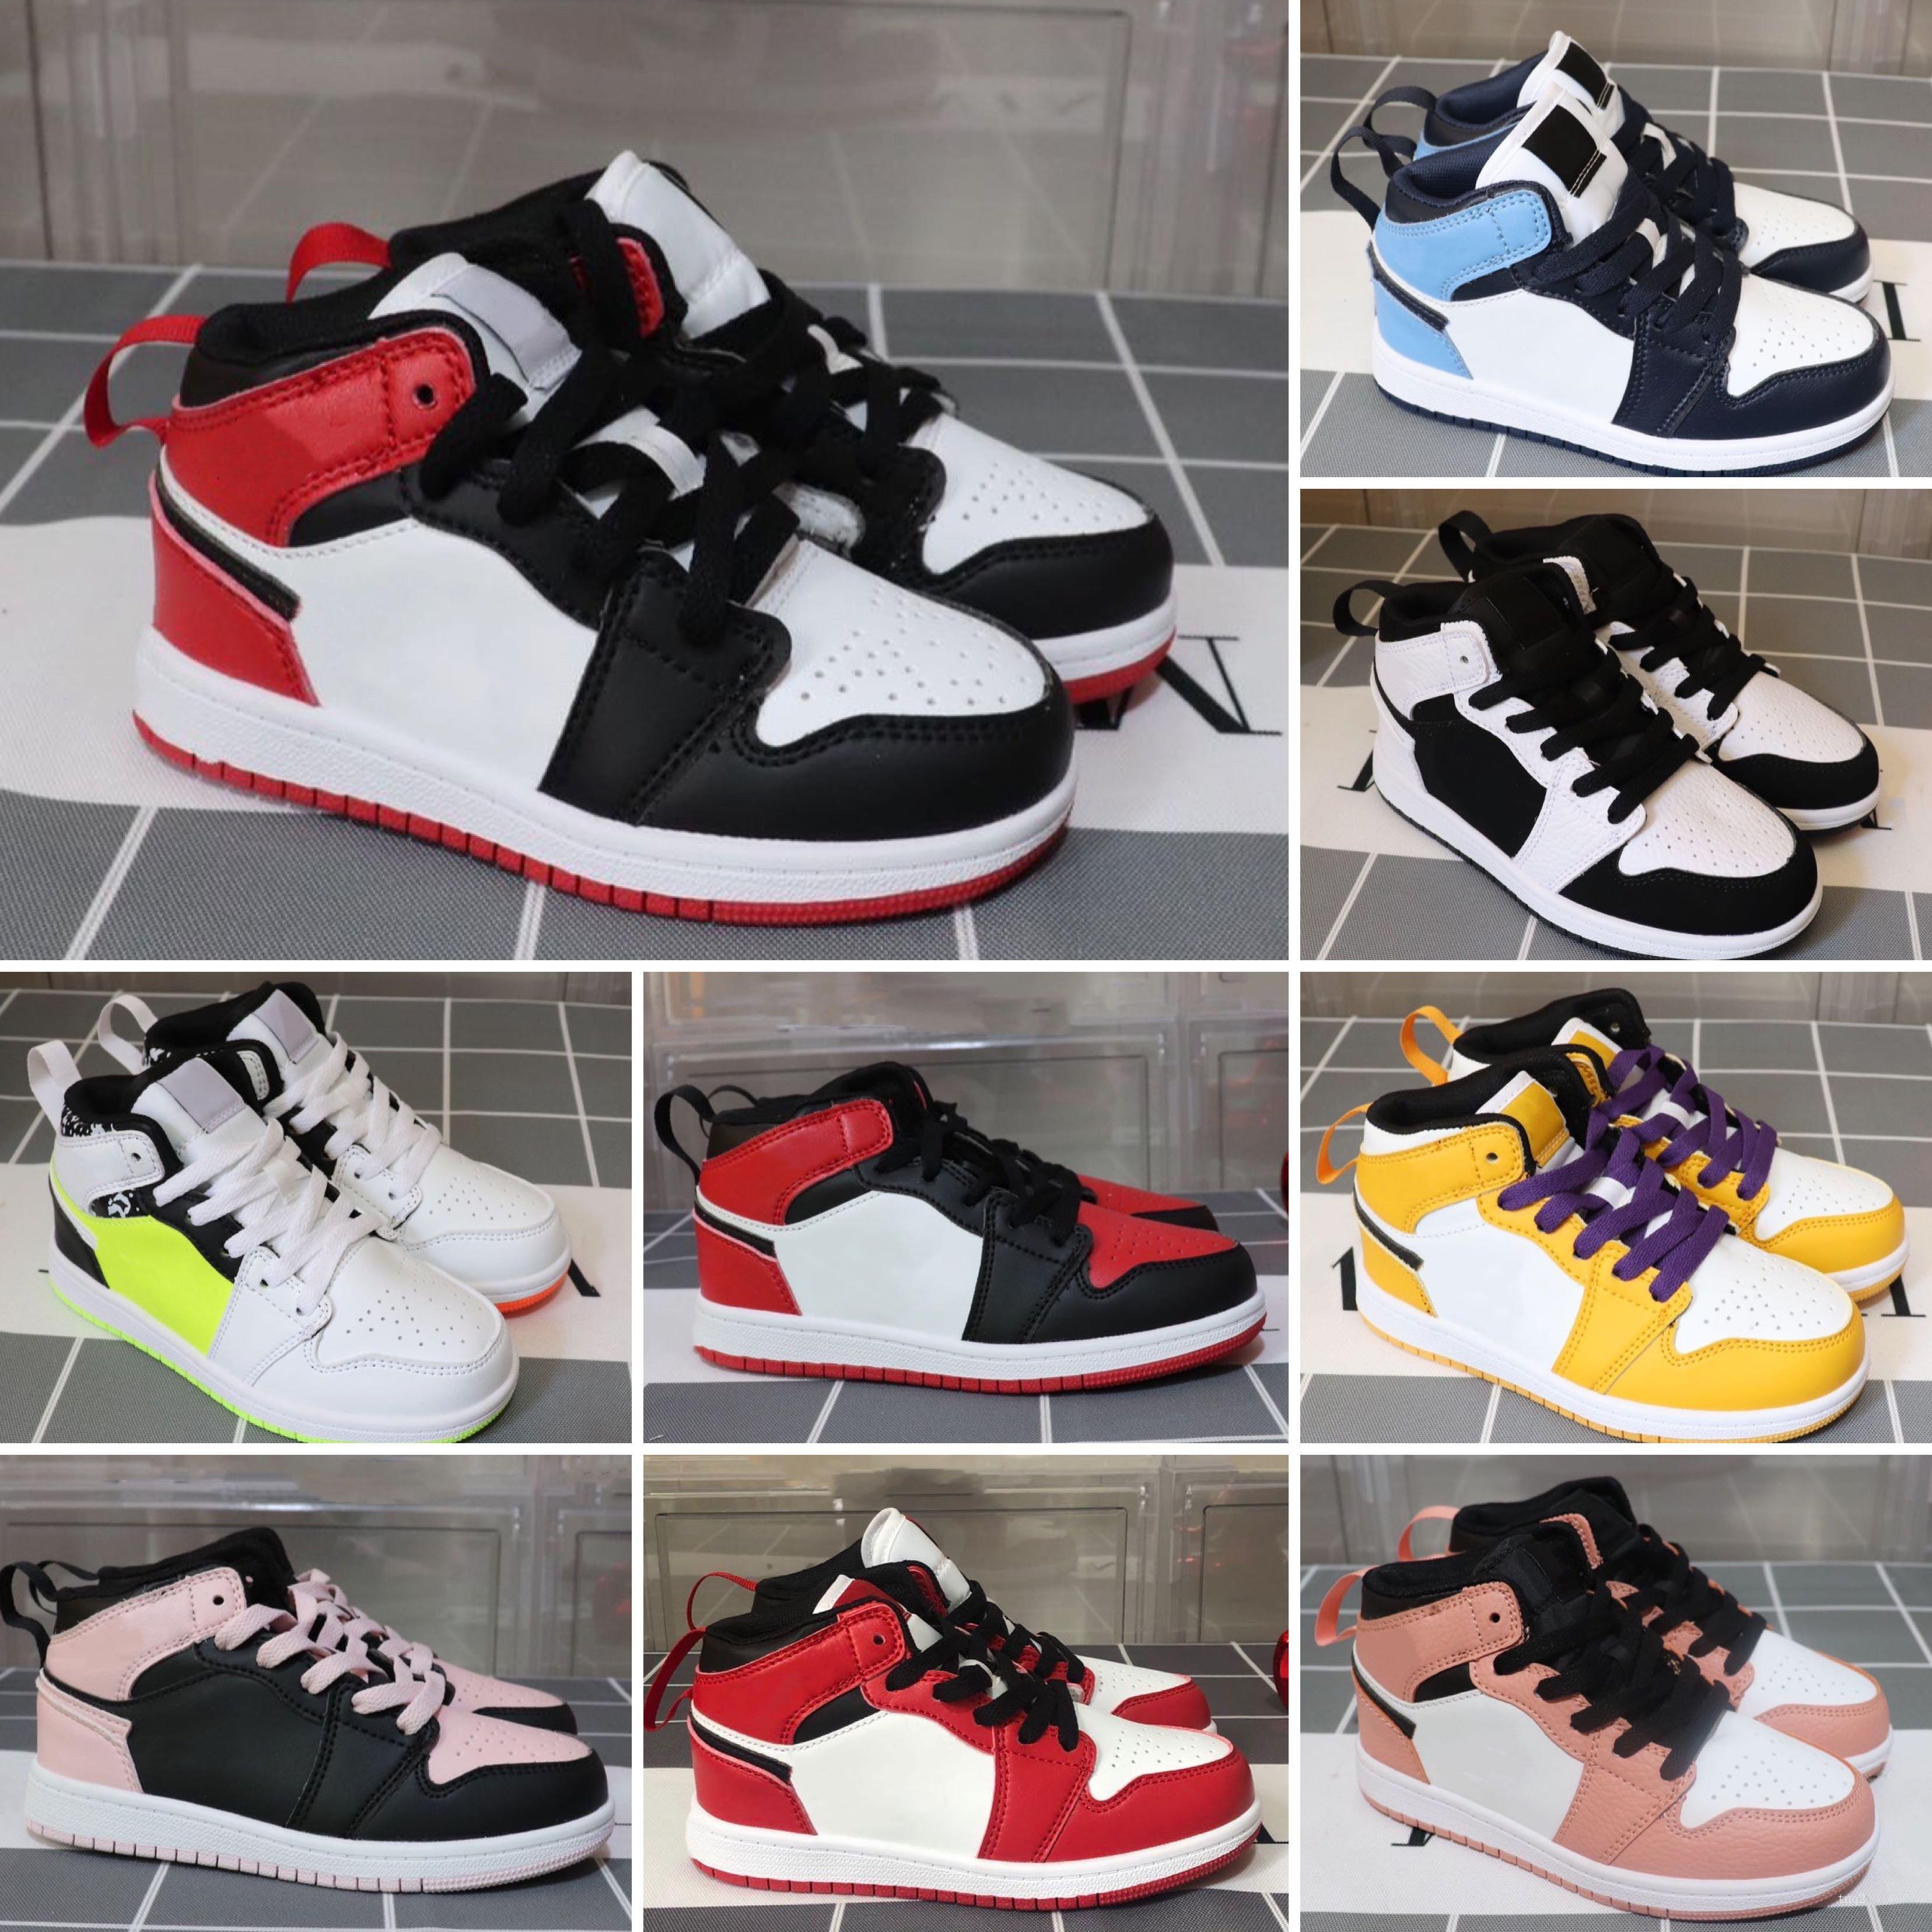 Cheap new 1 basketball shoes retro Wolf Grey Gamma blue black white red prom night kids jumpman sneakers tennis